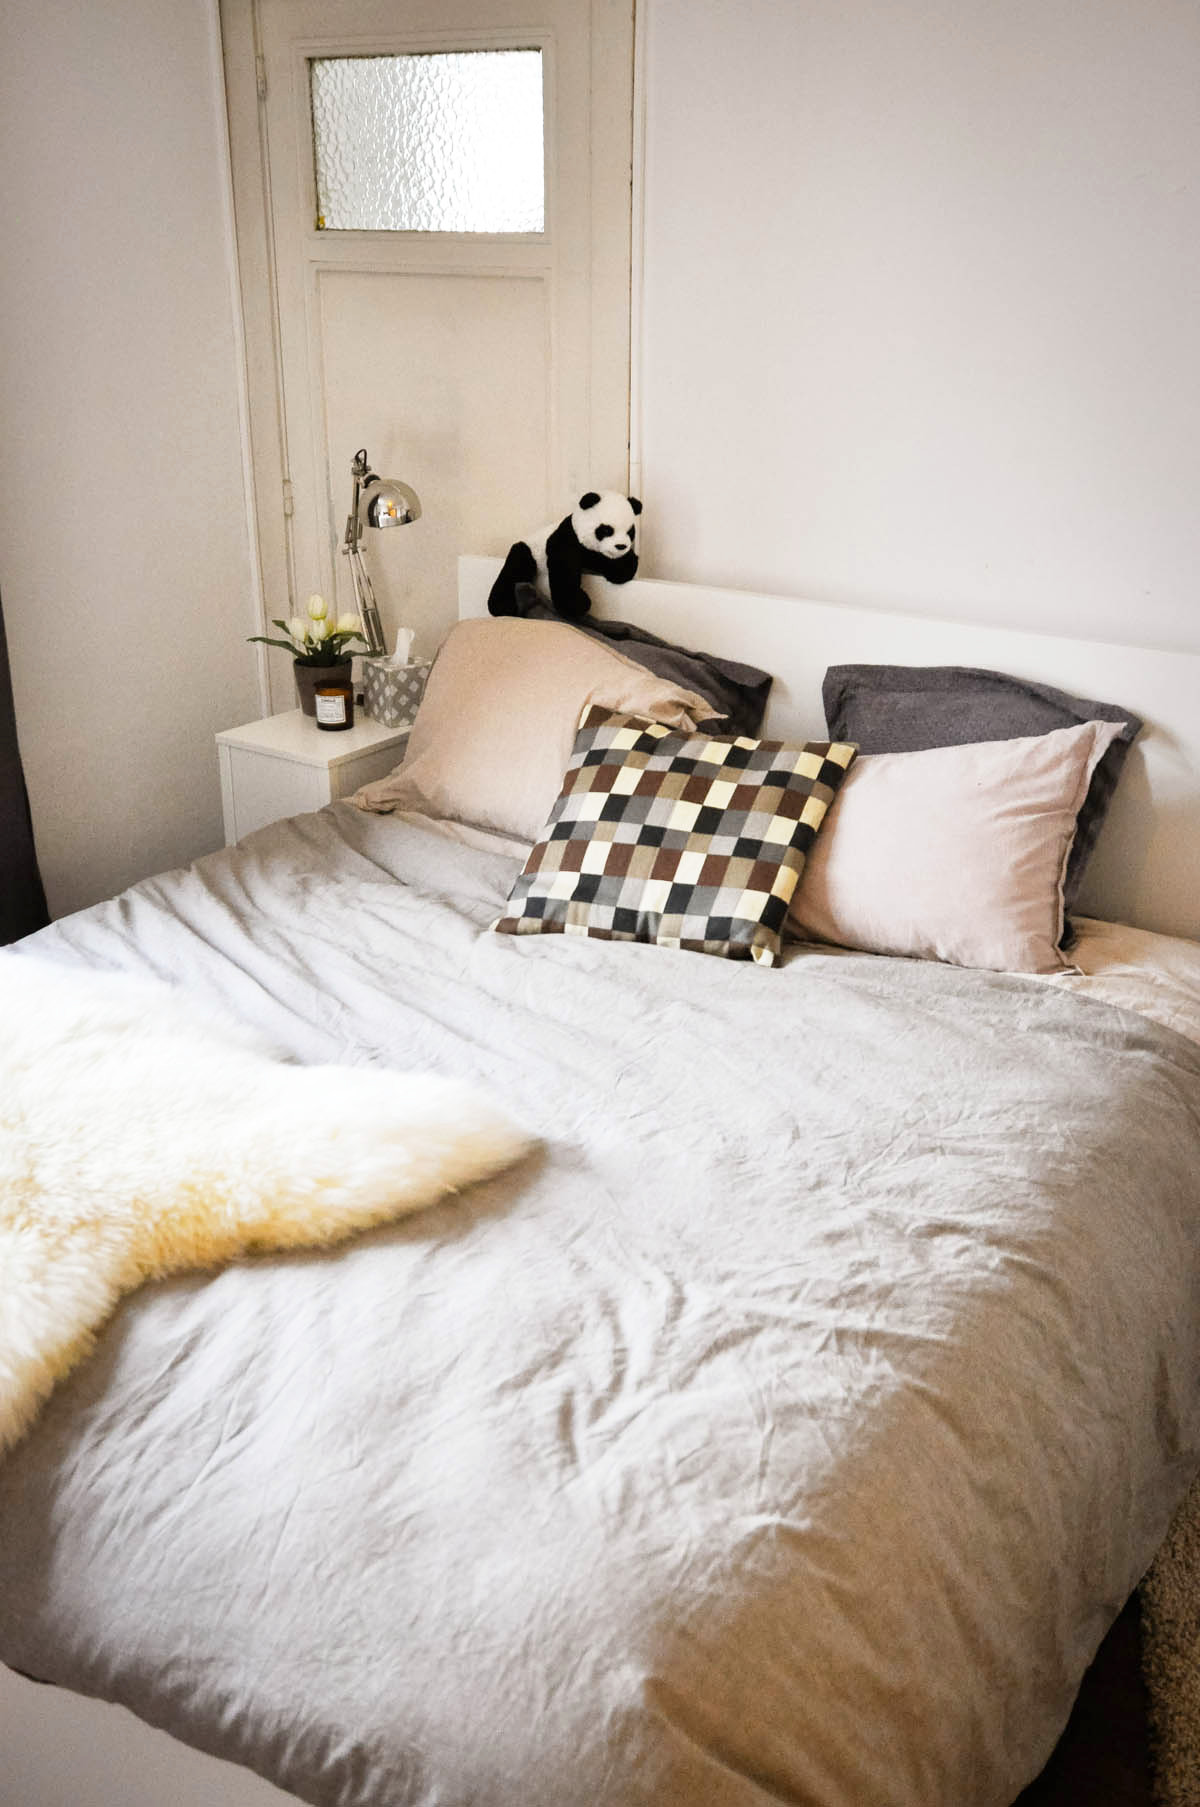 a Dogs and Dresses interior house apartment IKEA bedroom-25